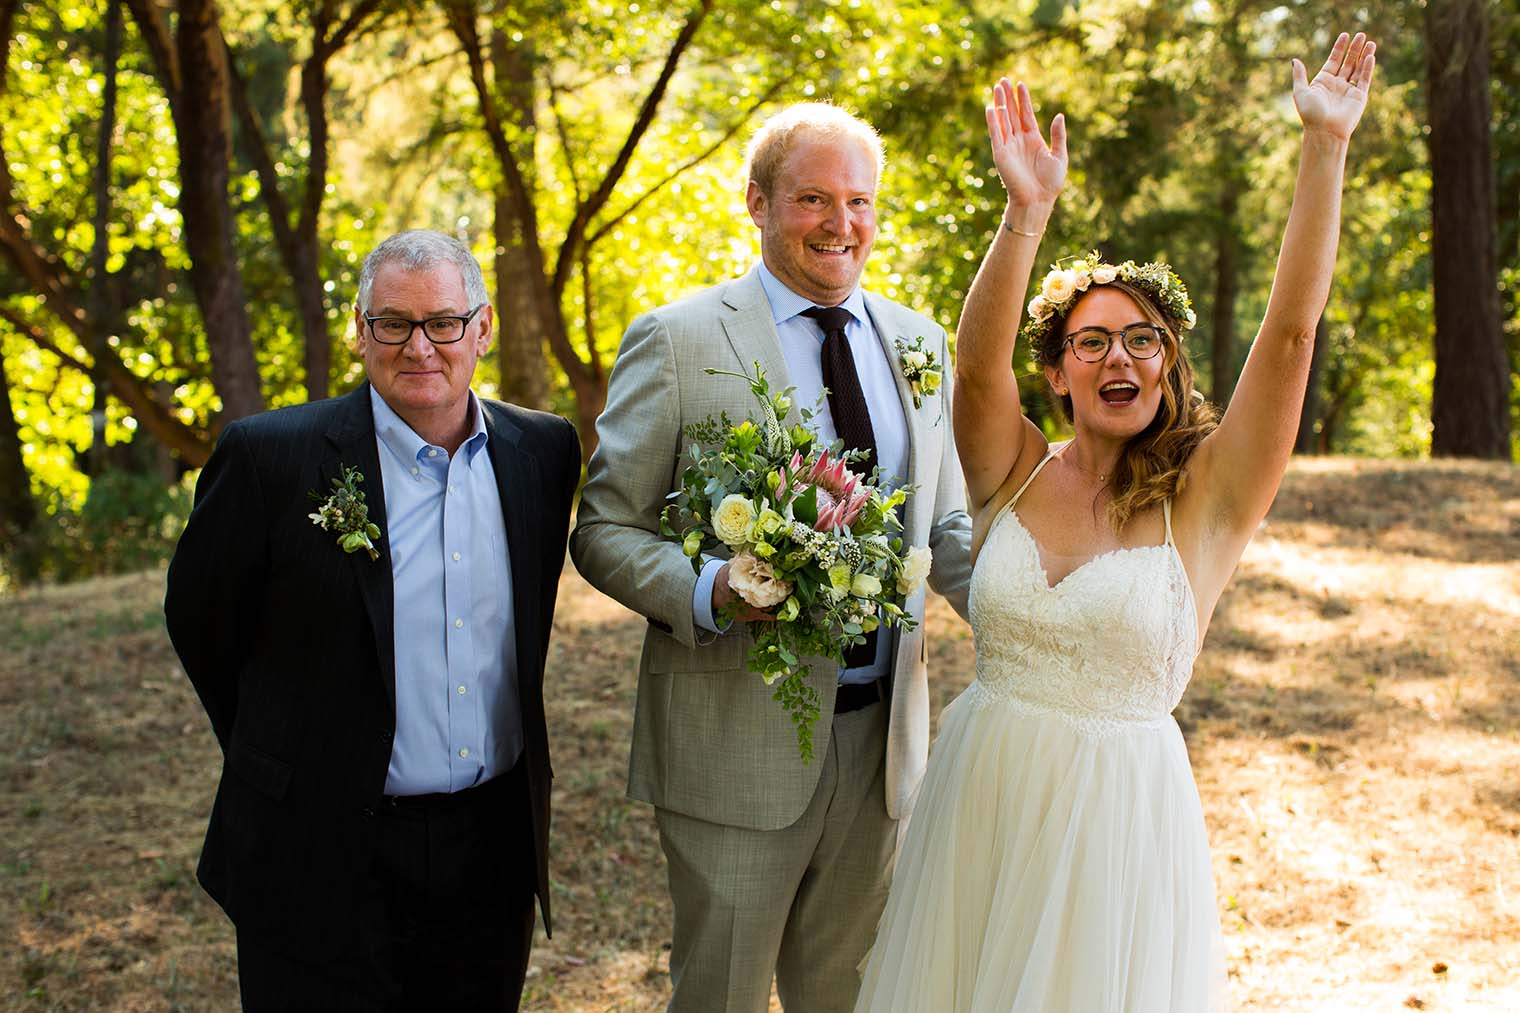 Anderson Valley Weddings